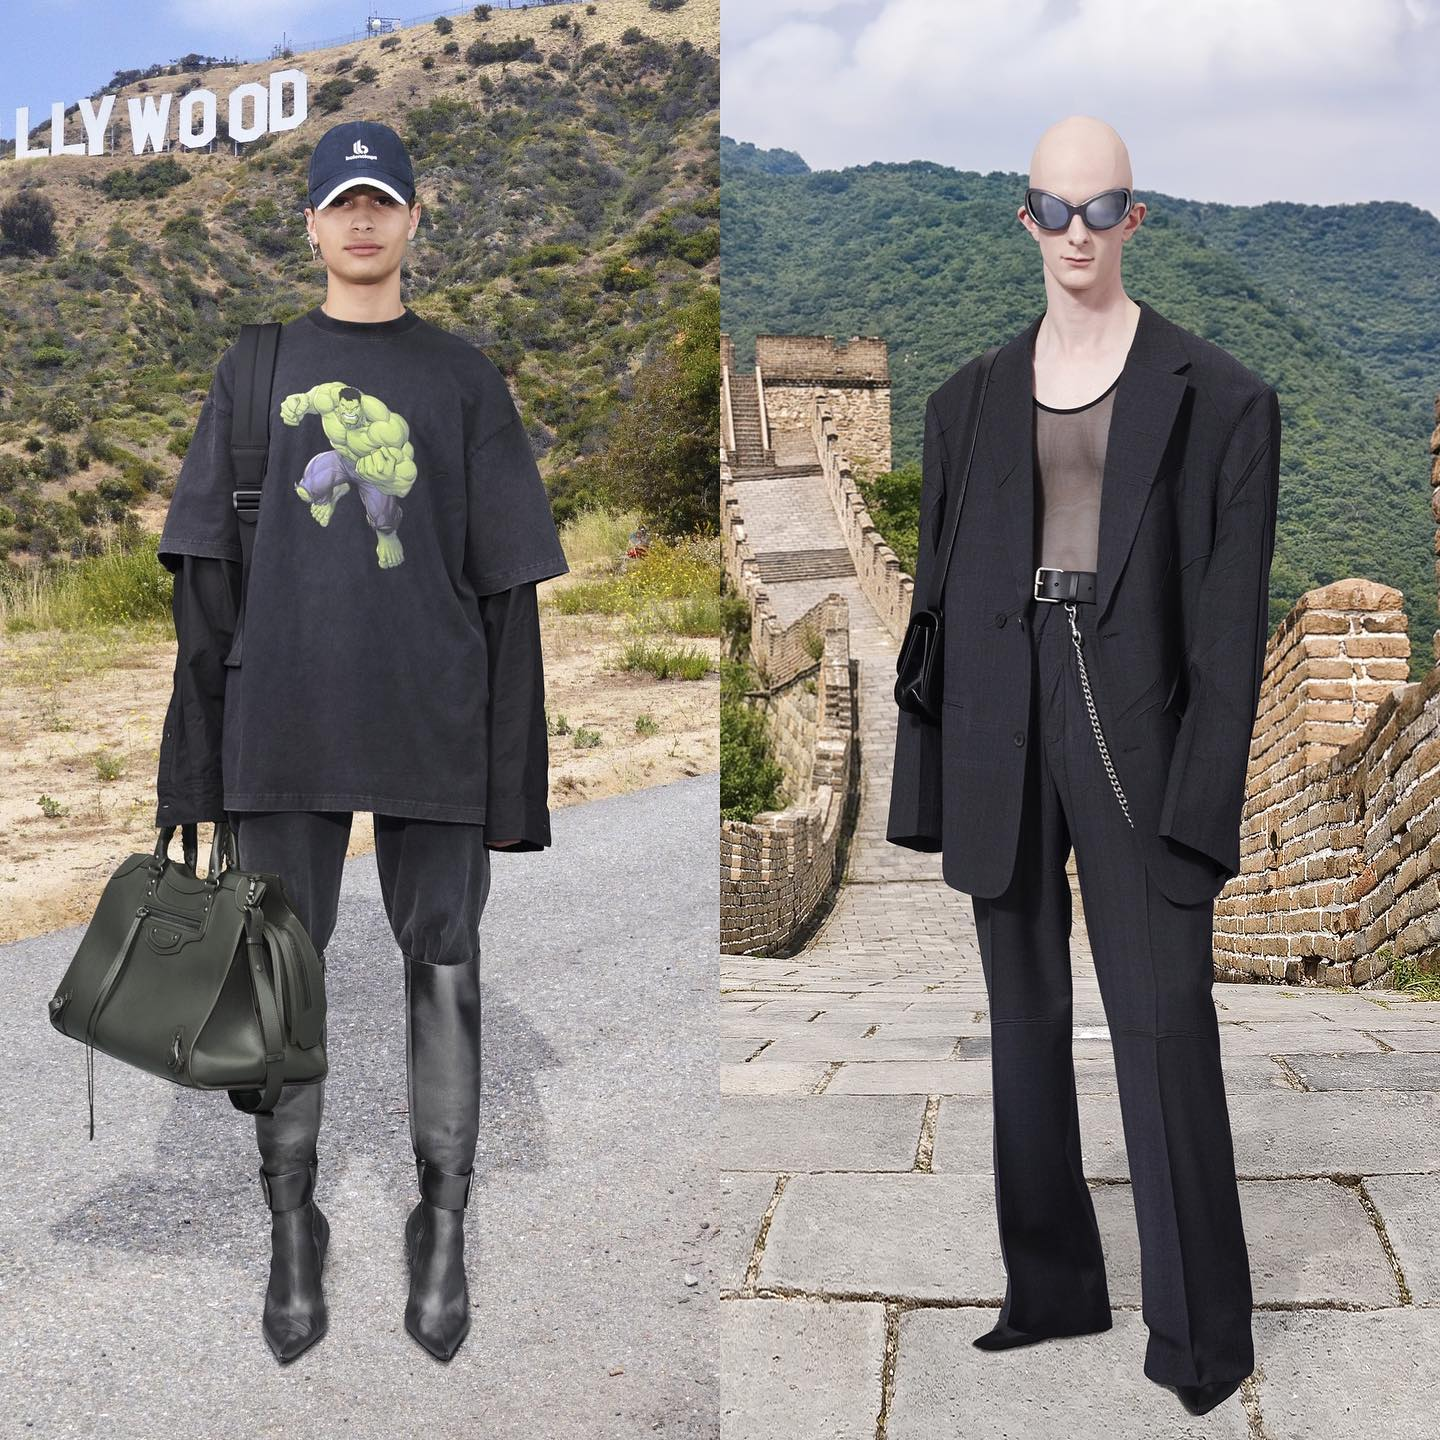 Guiaume and Hansi for Balenciaga Winter 21. Photography by Patrick Welde, hair by Holli Smith, makeup by Inge Grognard.